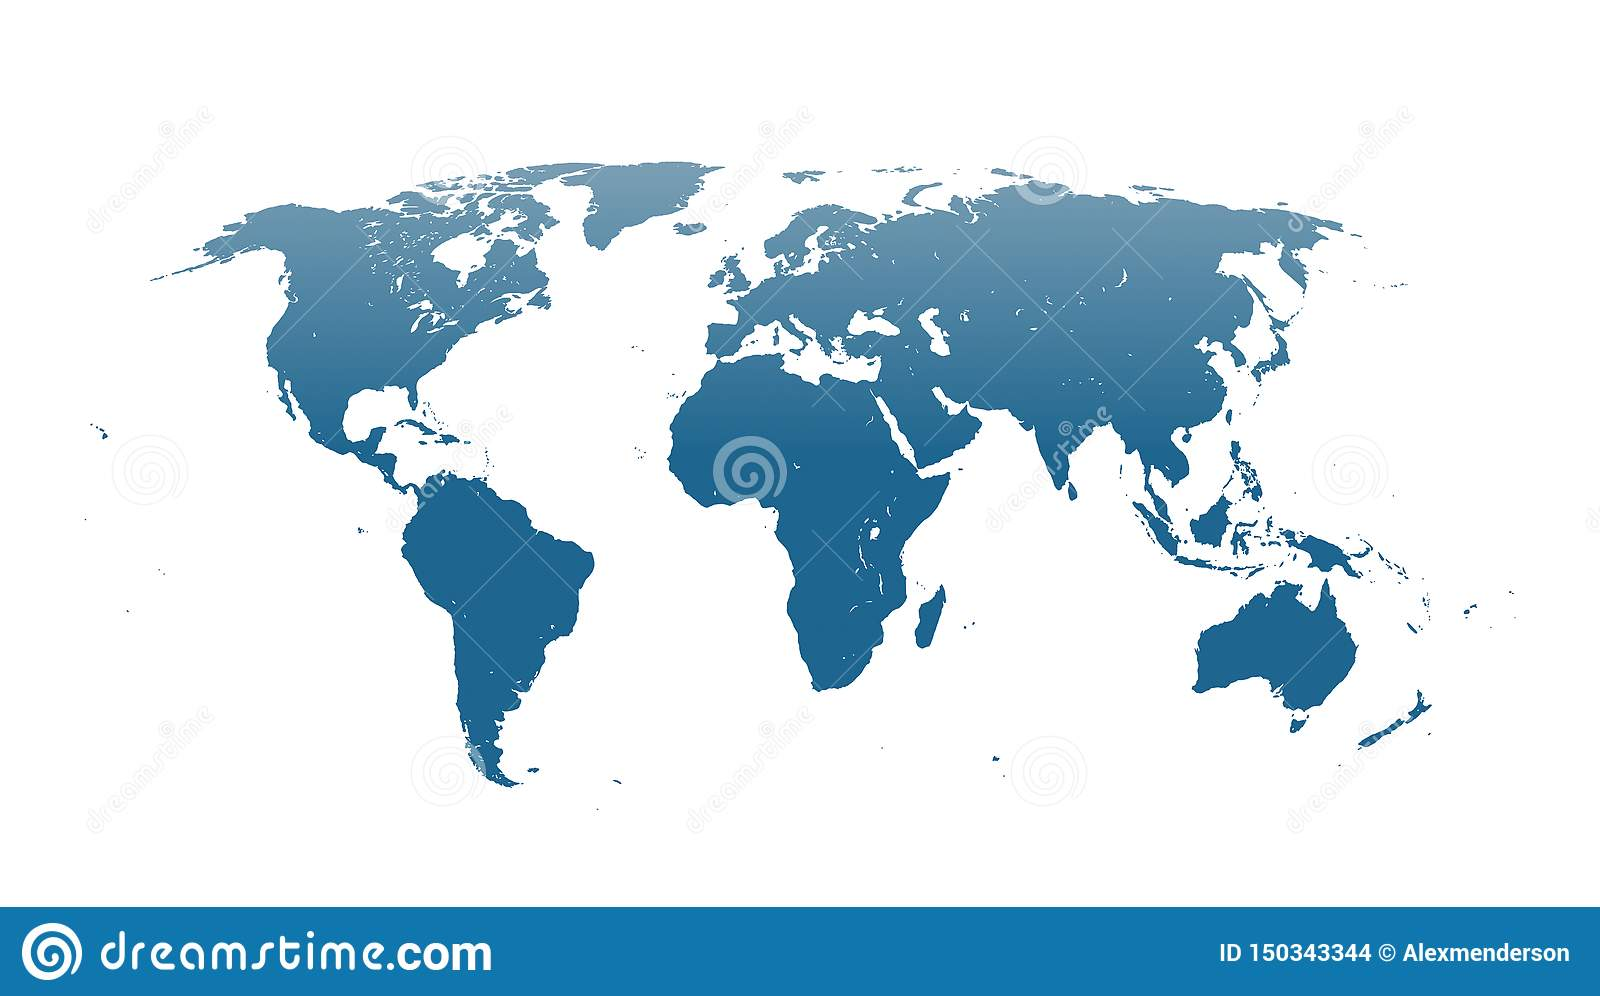 World Map Vector With Continents And Oceans Stock Photo ...